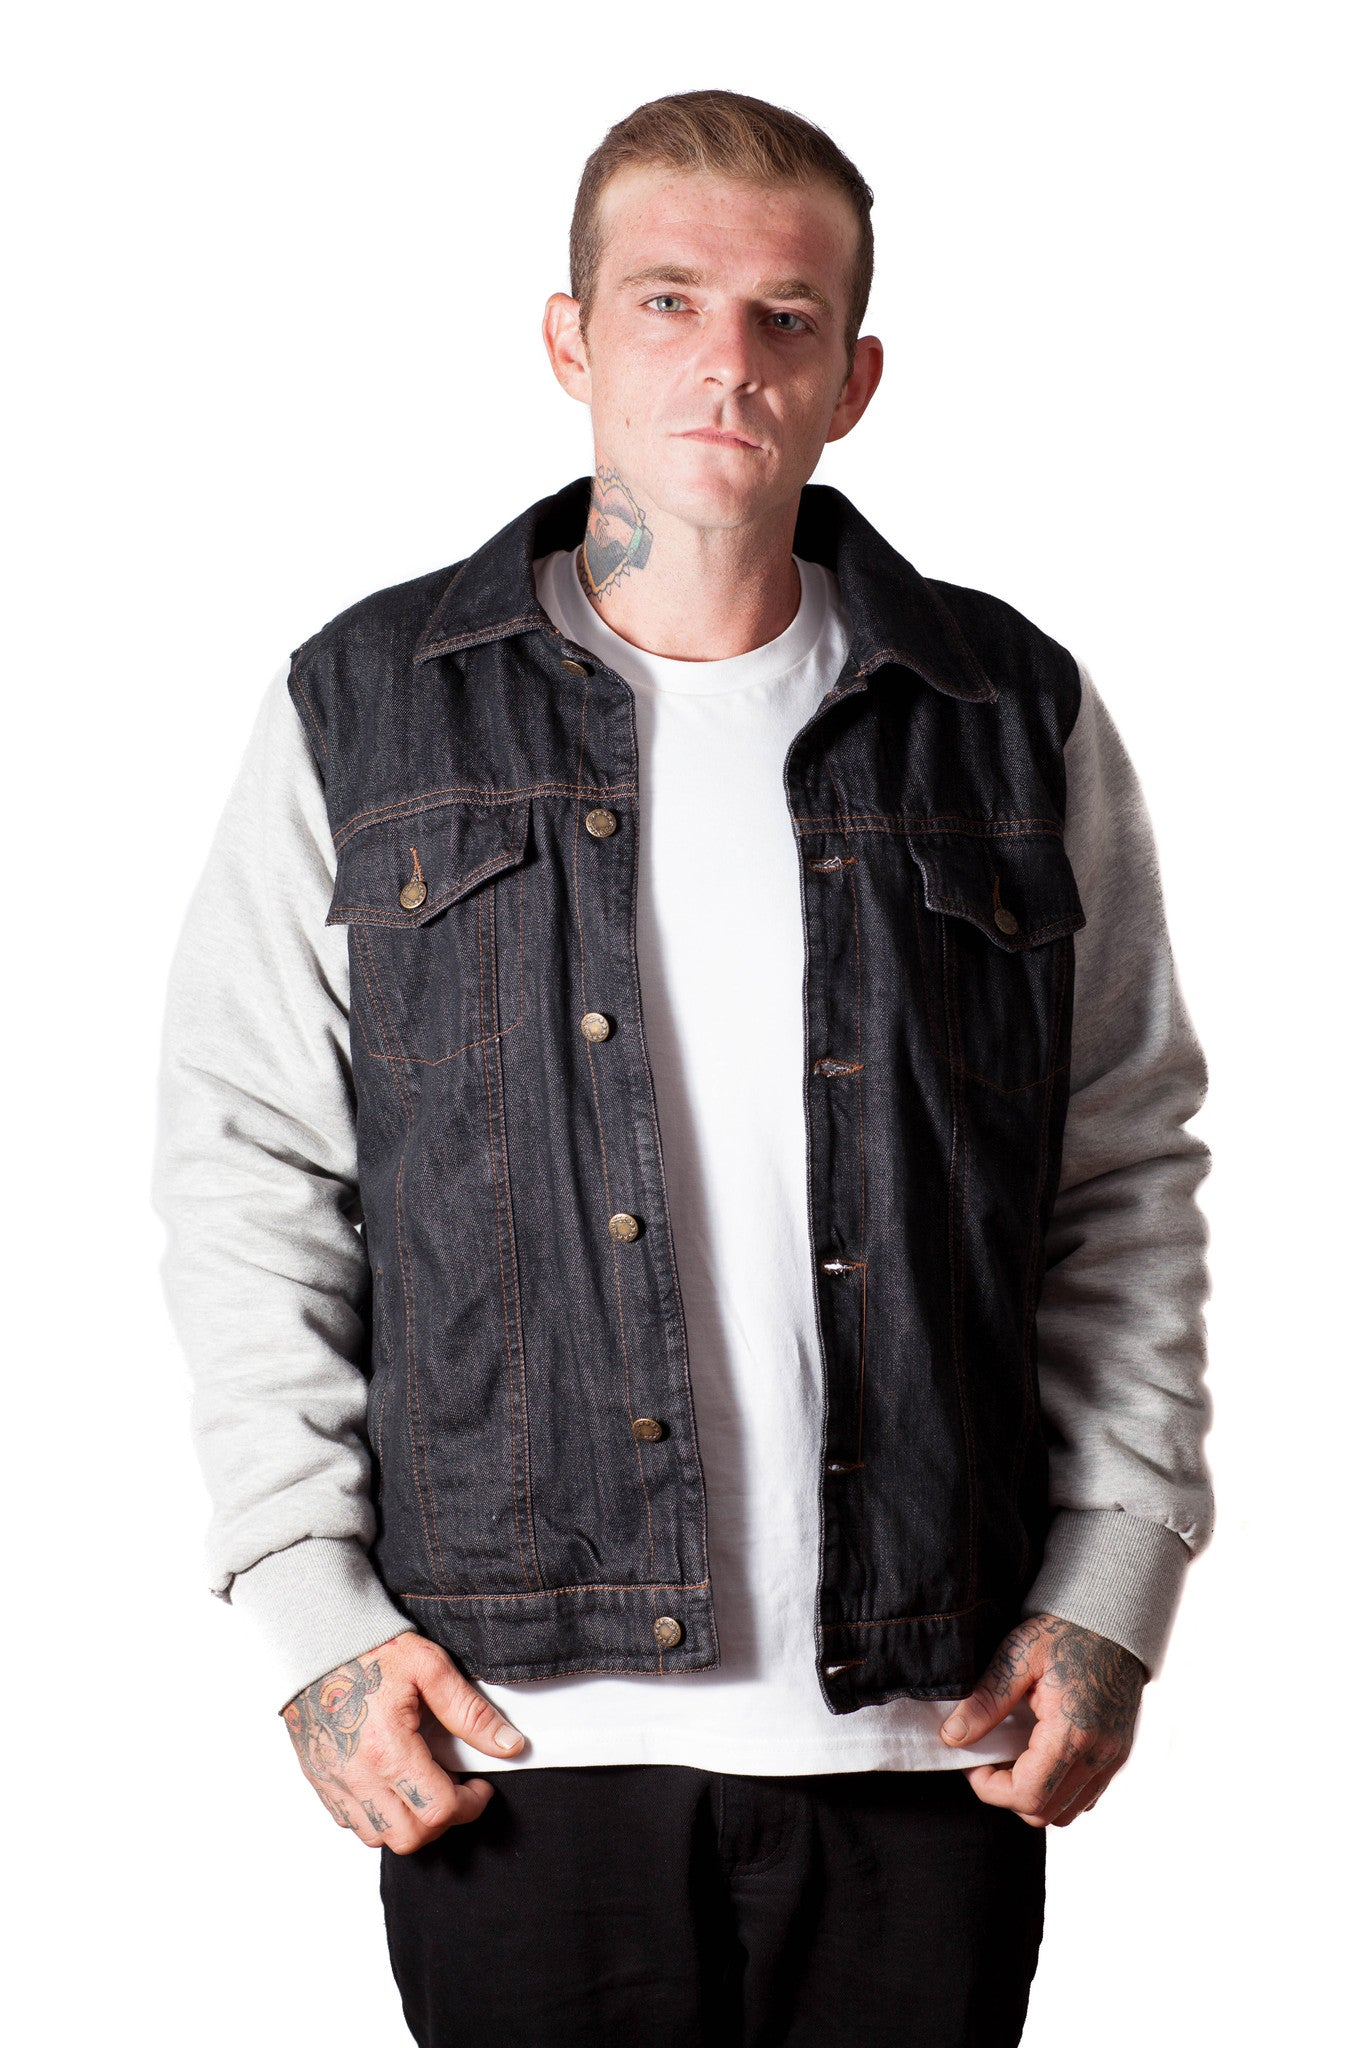 Denim and Cotton Jacket For Him